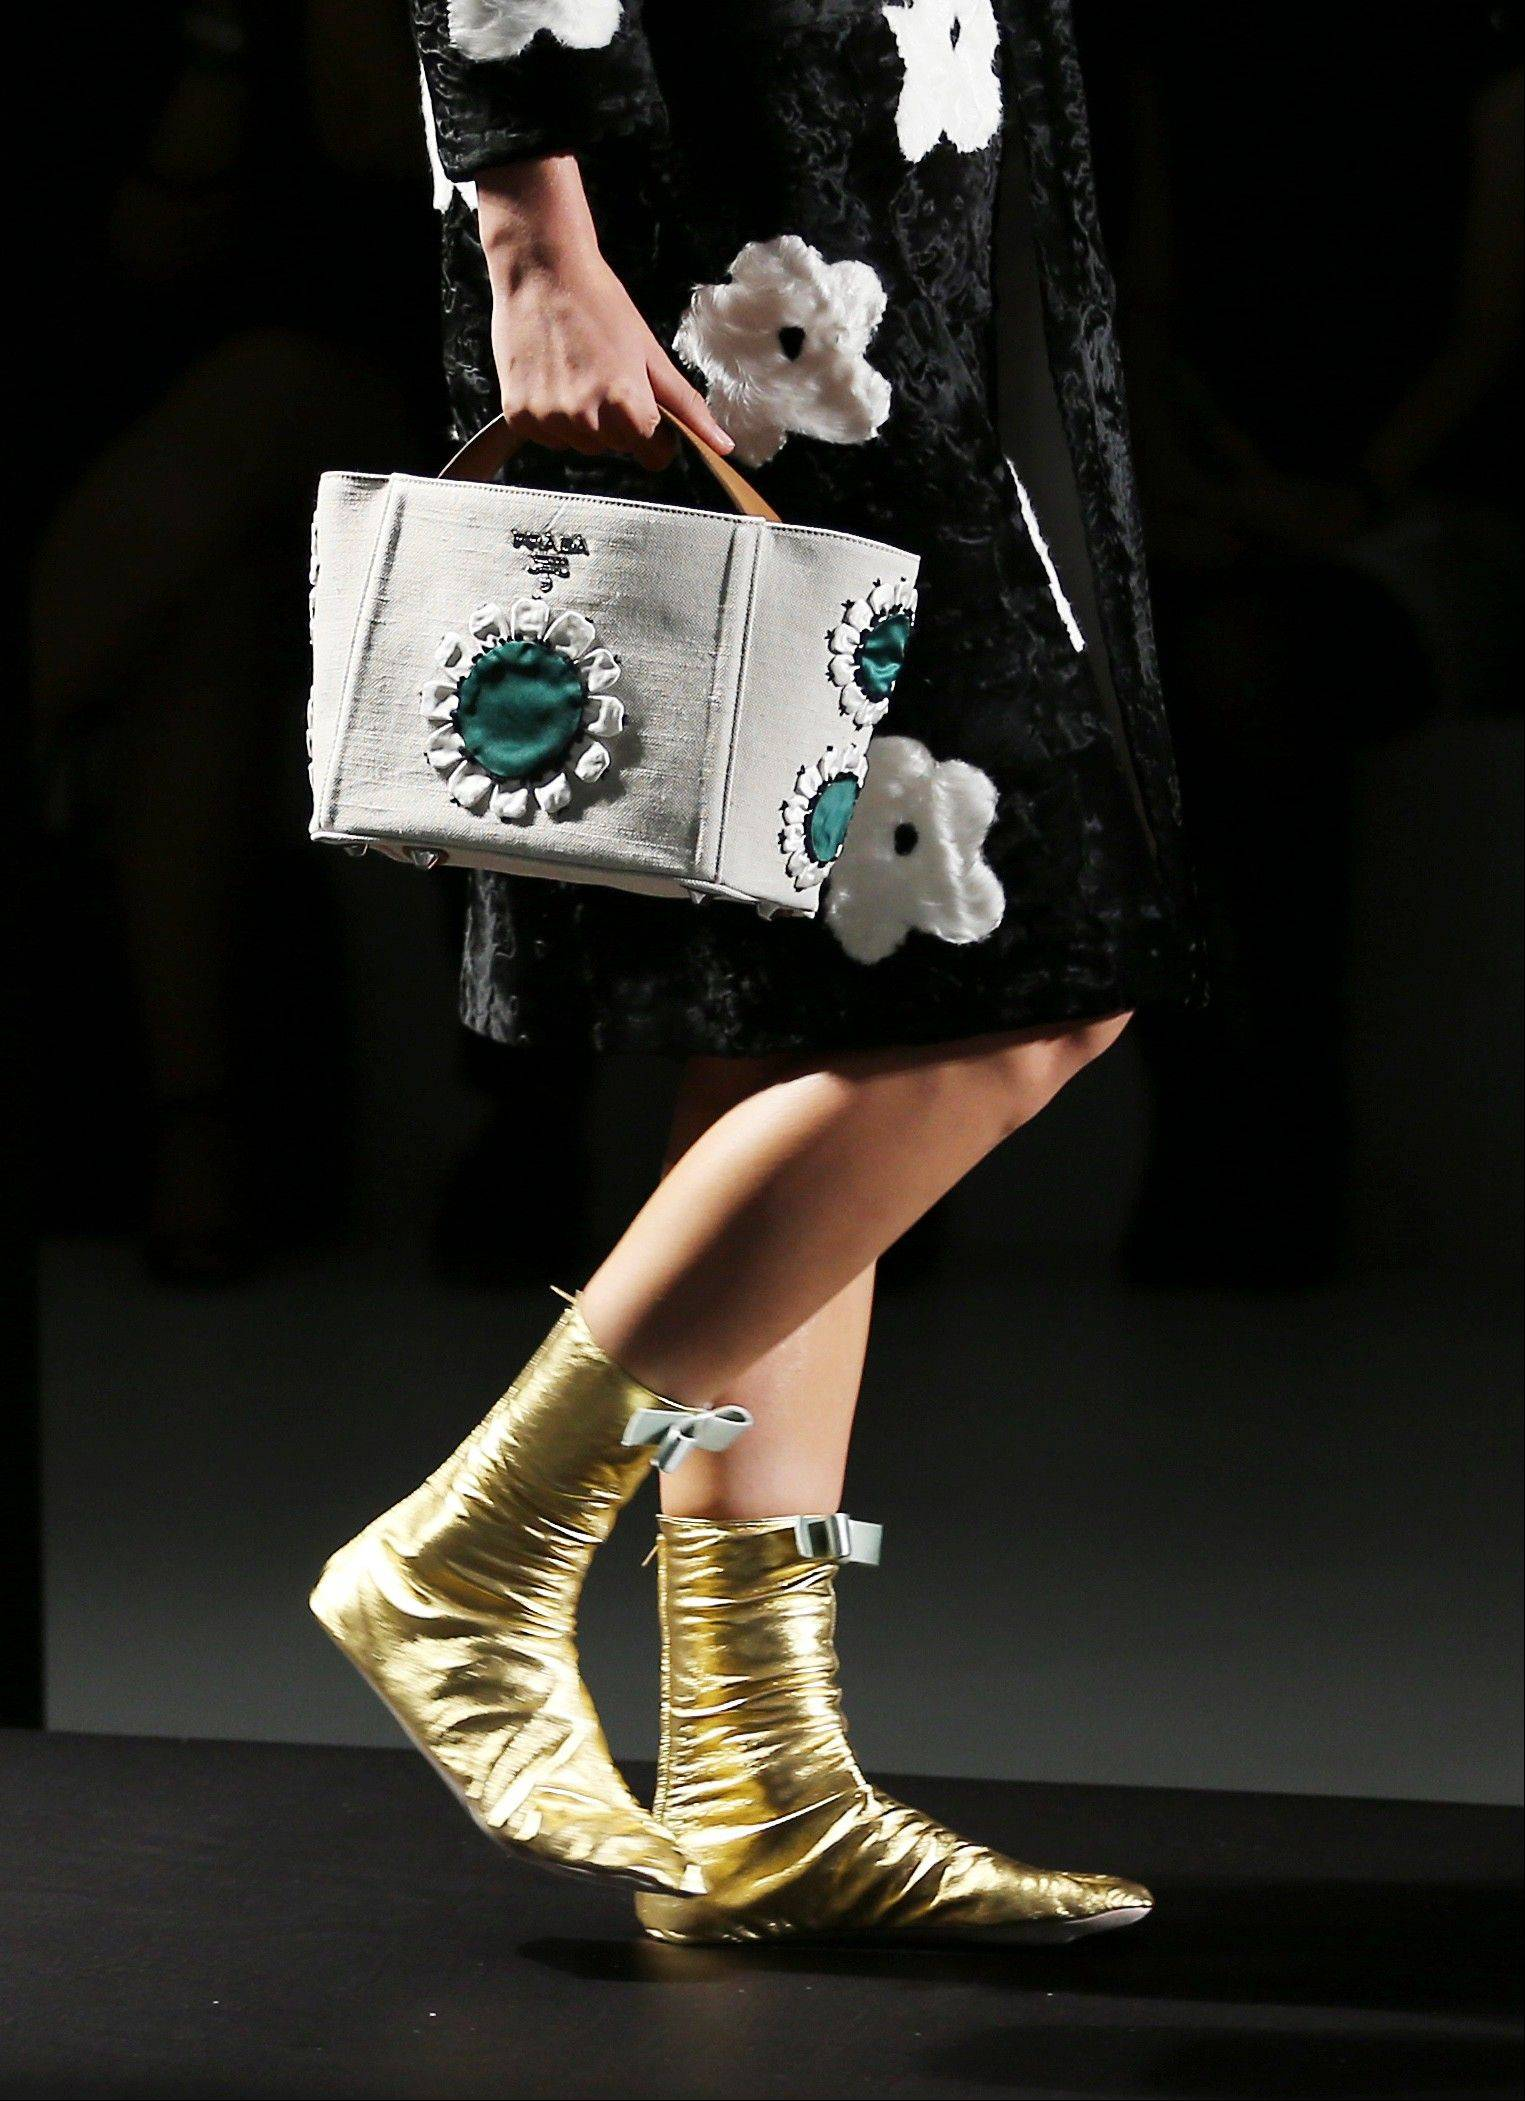 The central motif of Prada's new collection is a graphic flower, which appeared on bags, tops, dresses, wraps and eyewear.